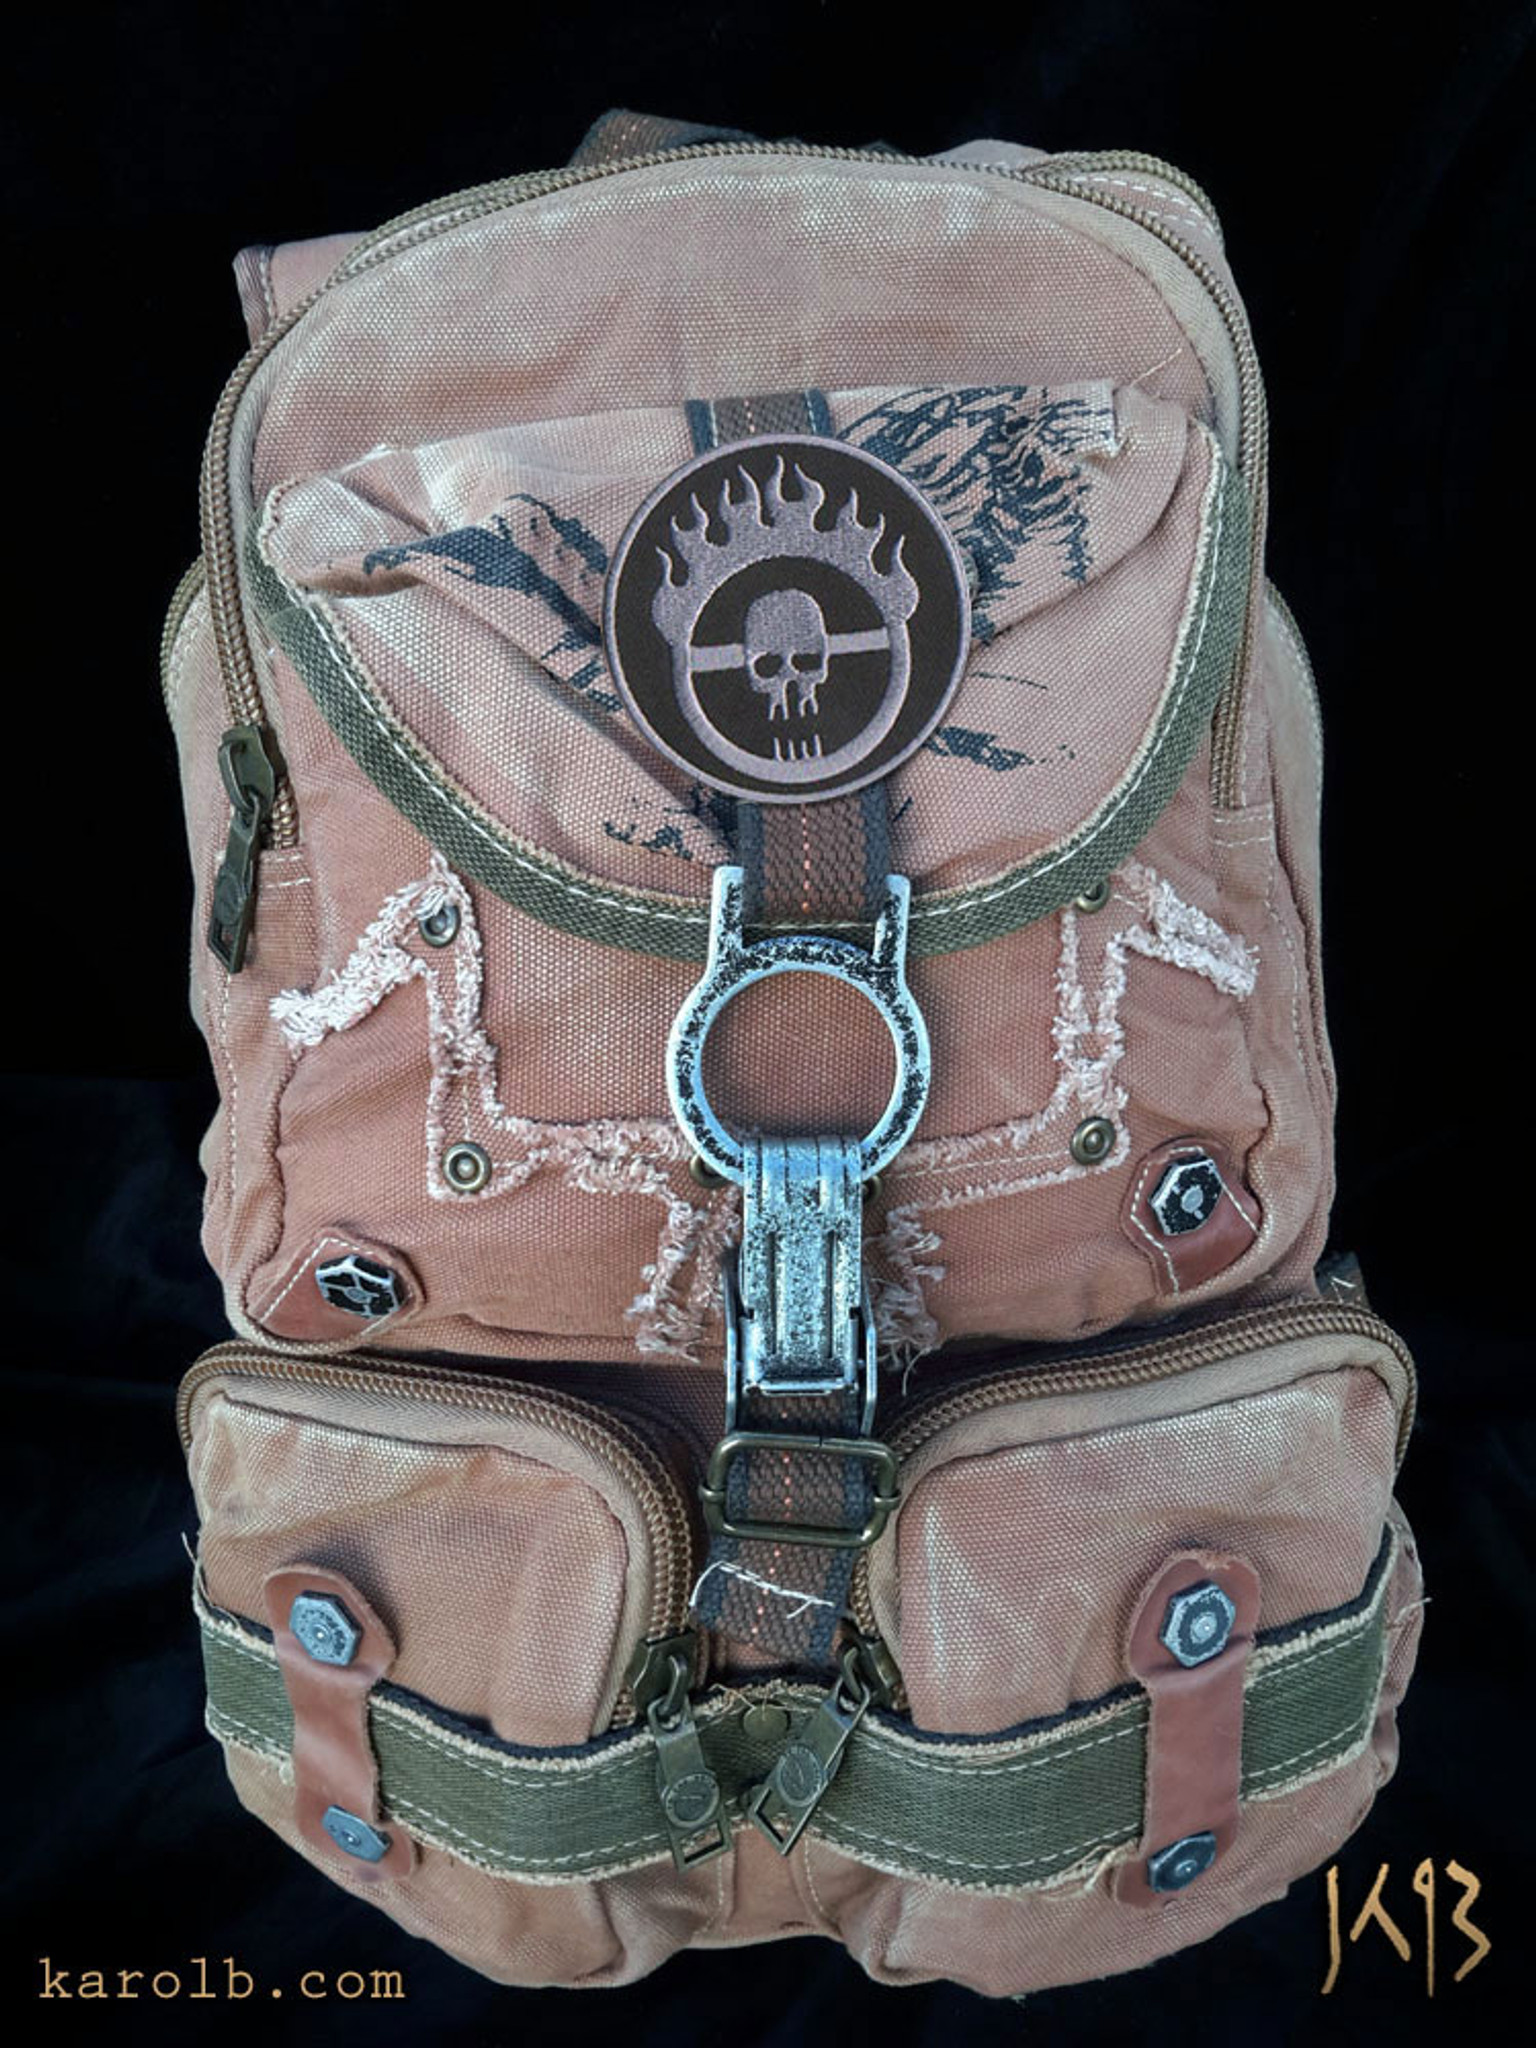 d59577d6da36 Atomic Slug Backpack - War Boy Edition Mad Max Fury Road - Karol B